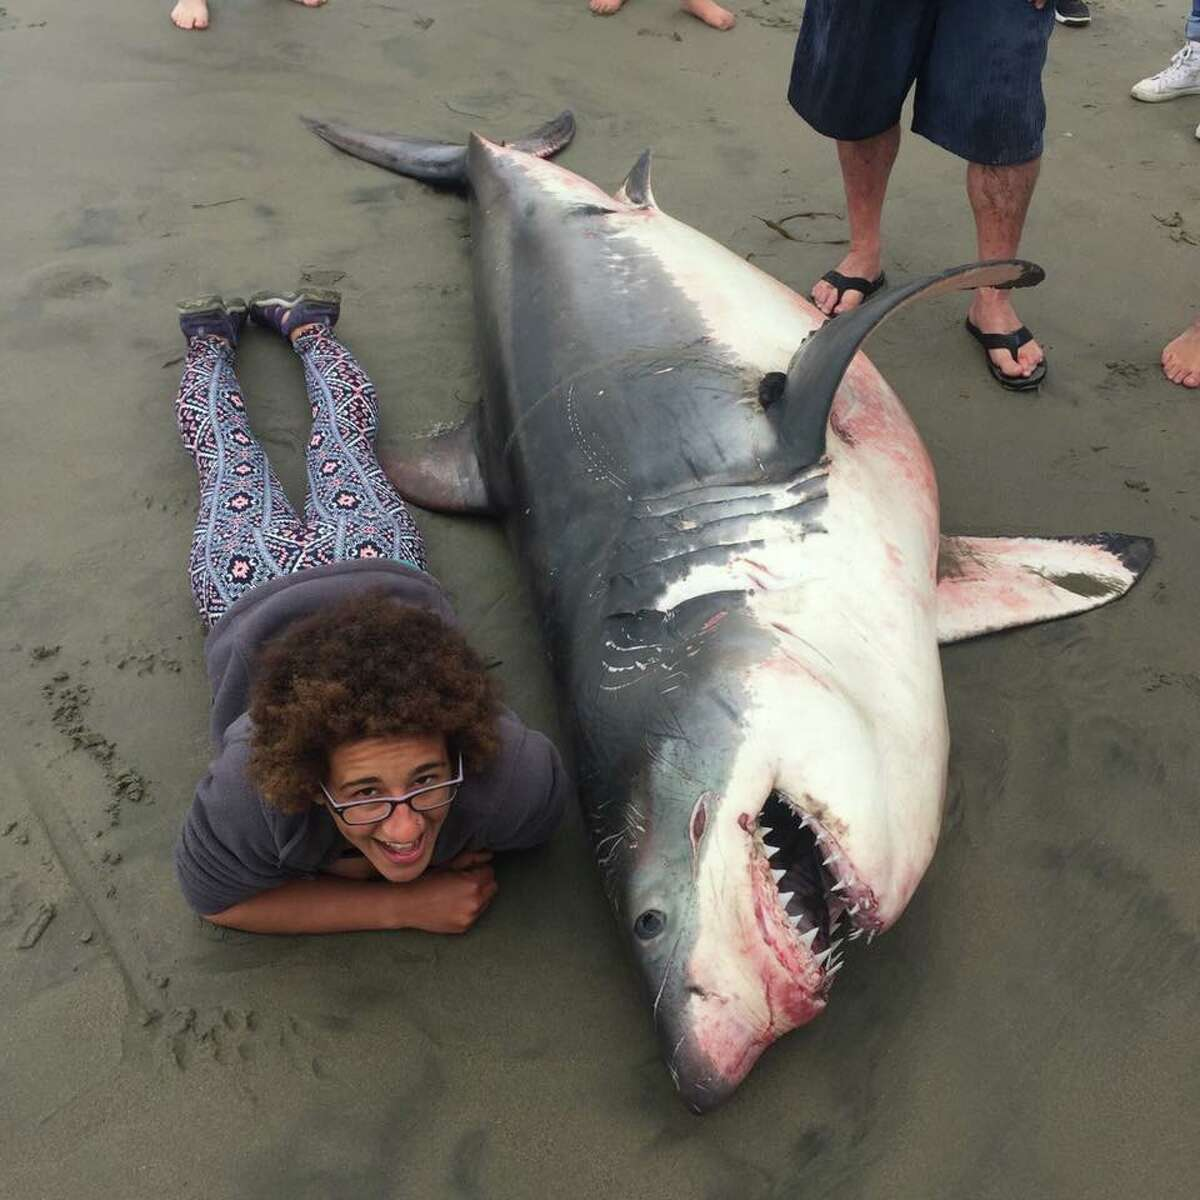 A marine biologist lies next to a dead shark washed up on a beach in Aptos, Calif., on June 17, 2018.